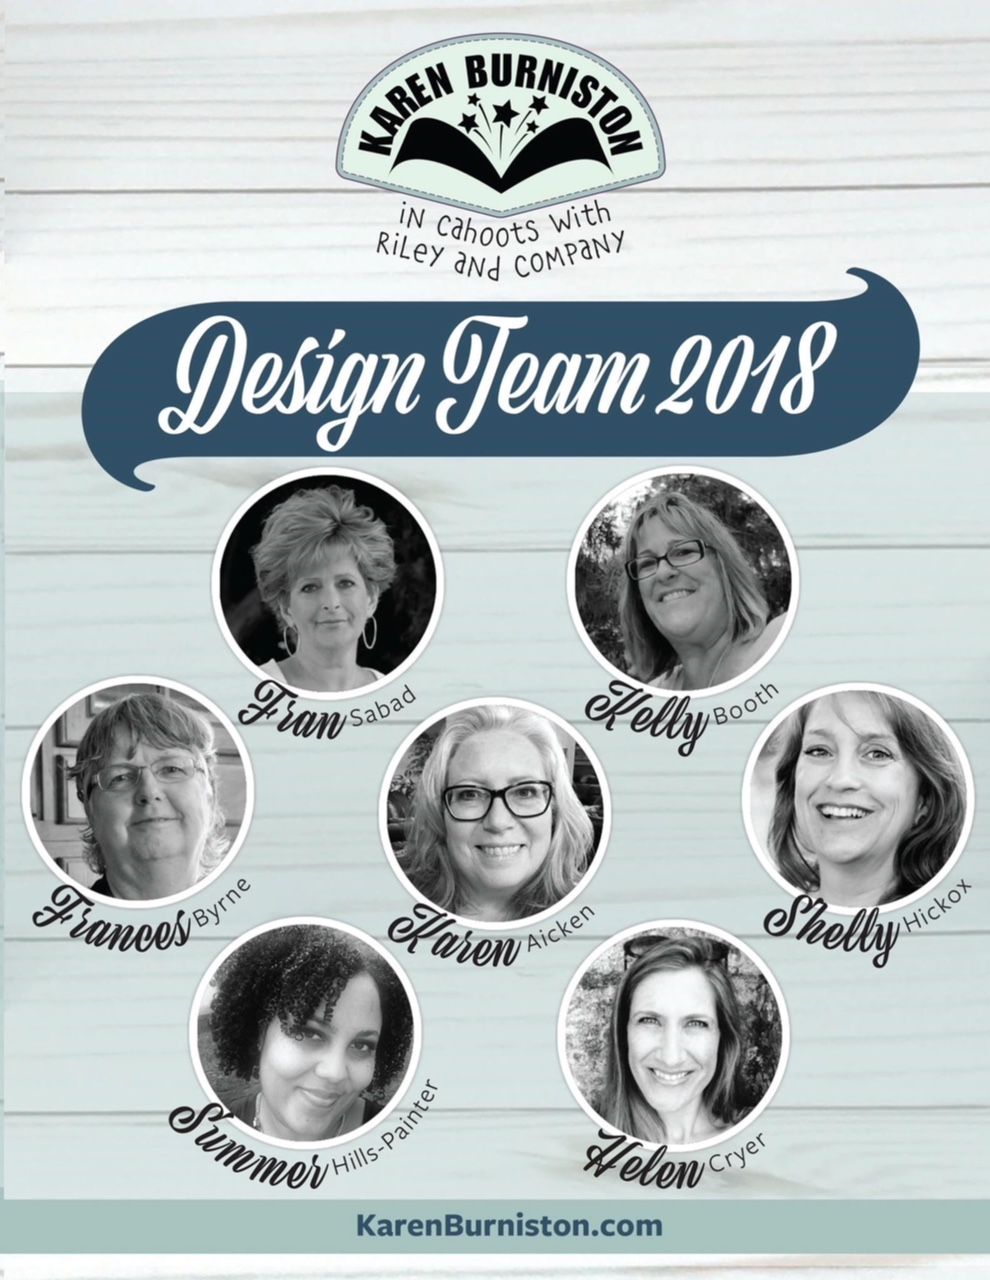 Karen Burniston Design Team